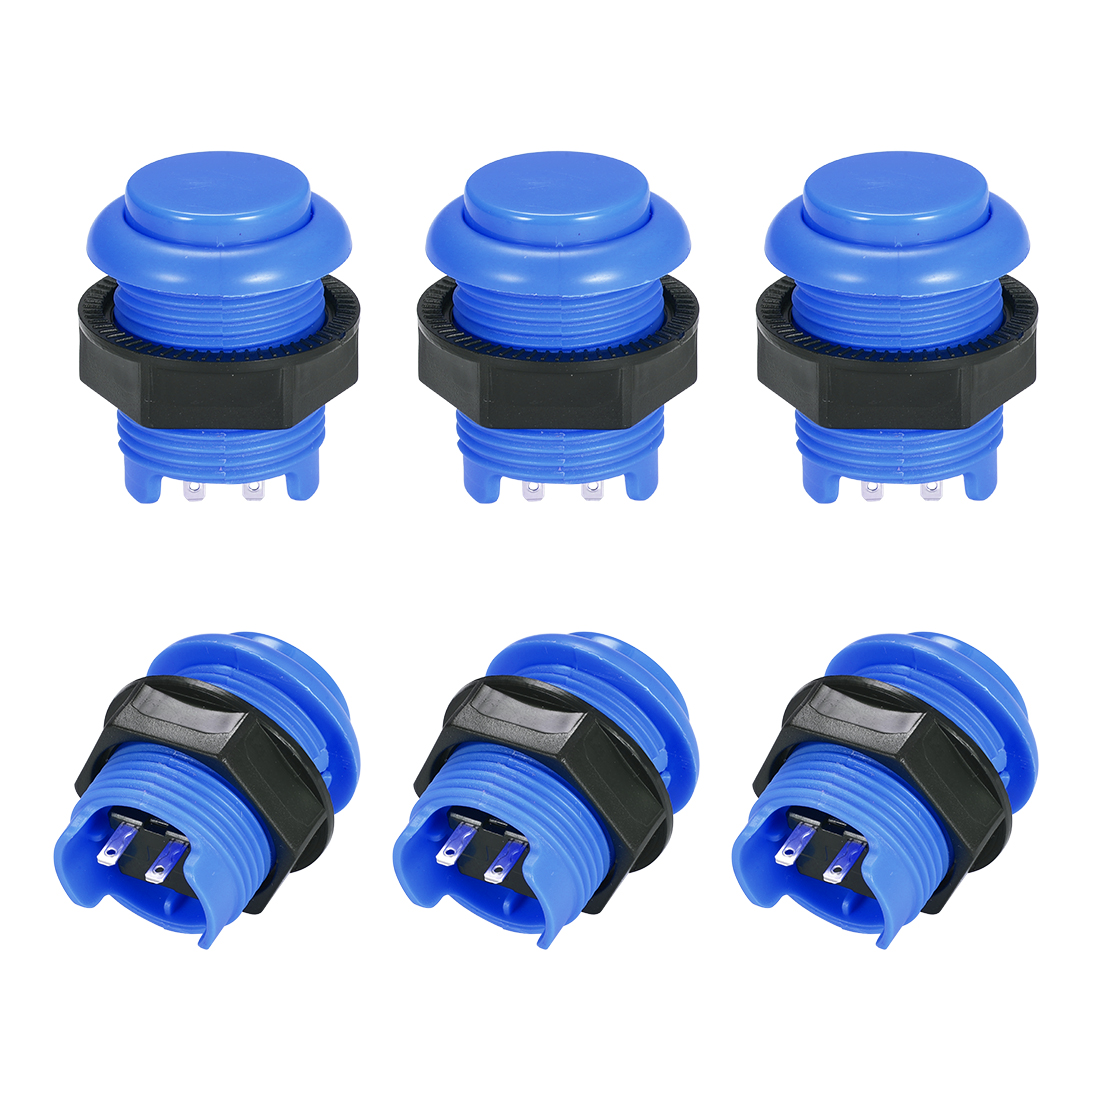 M28 Momentary Game Push Button Switch for Arcade Video Games Blue 6pcs